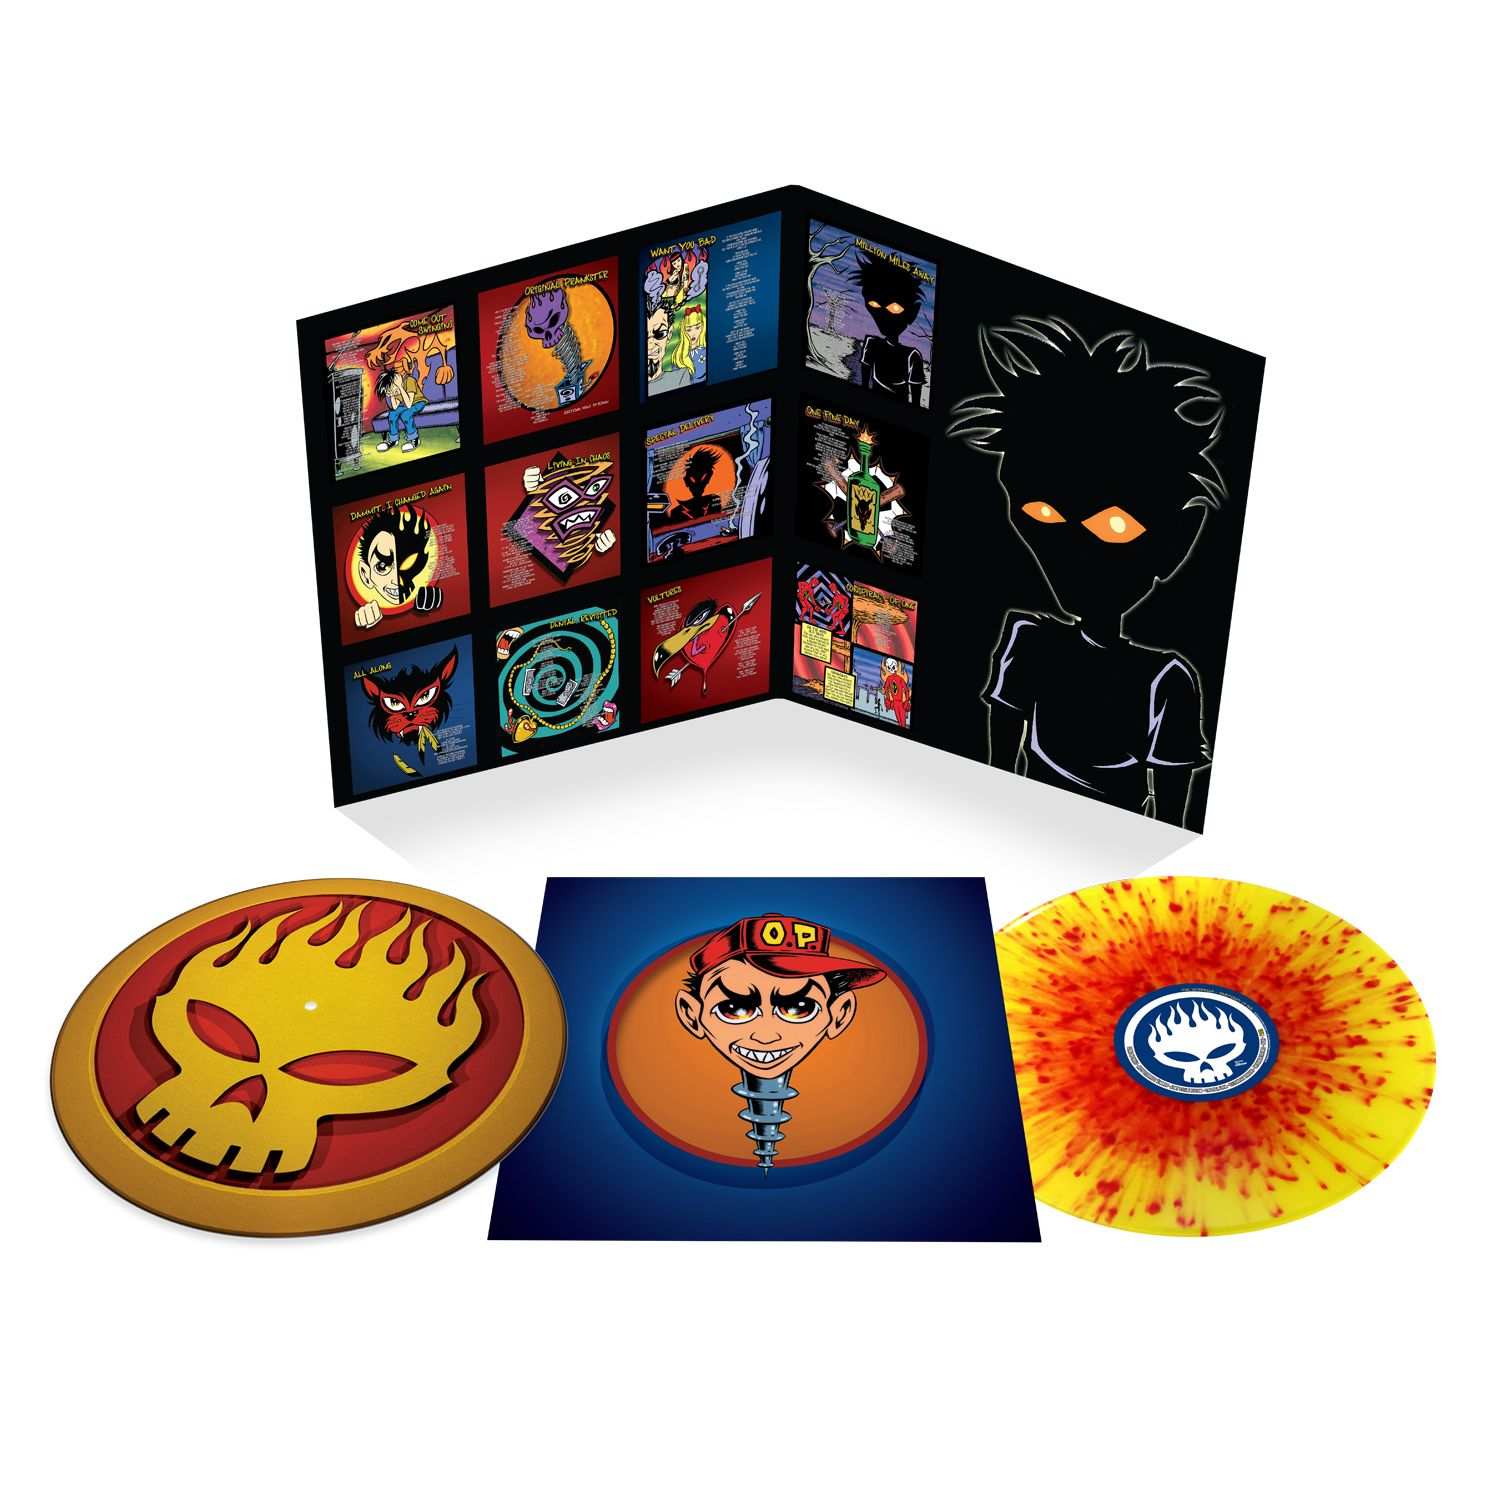 The Offspring - Conspiracy of One (Re-issue) Deluxe Vinyl + Slipmat